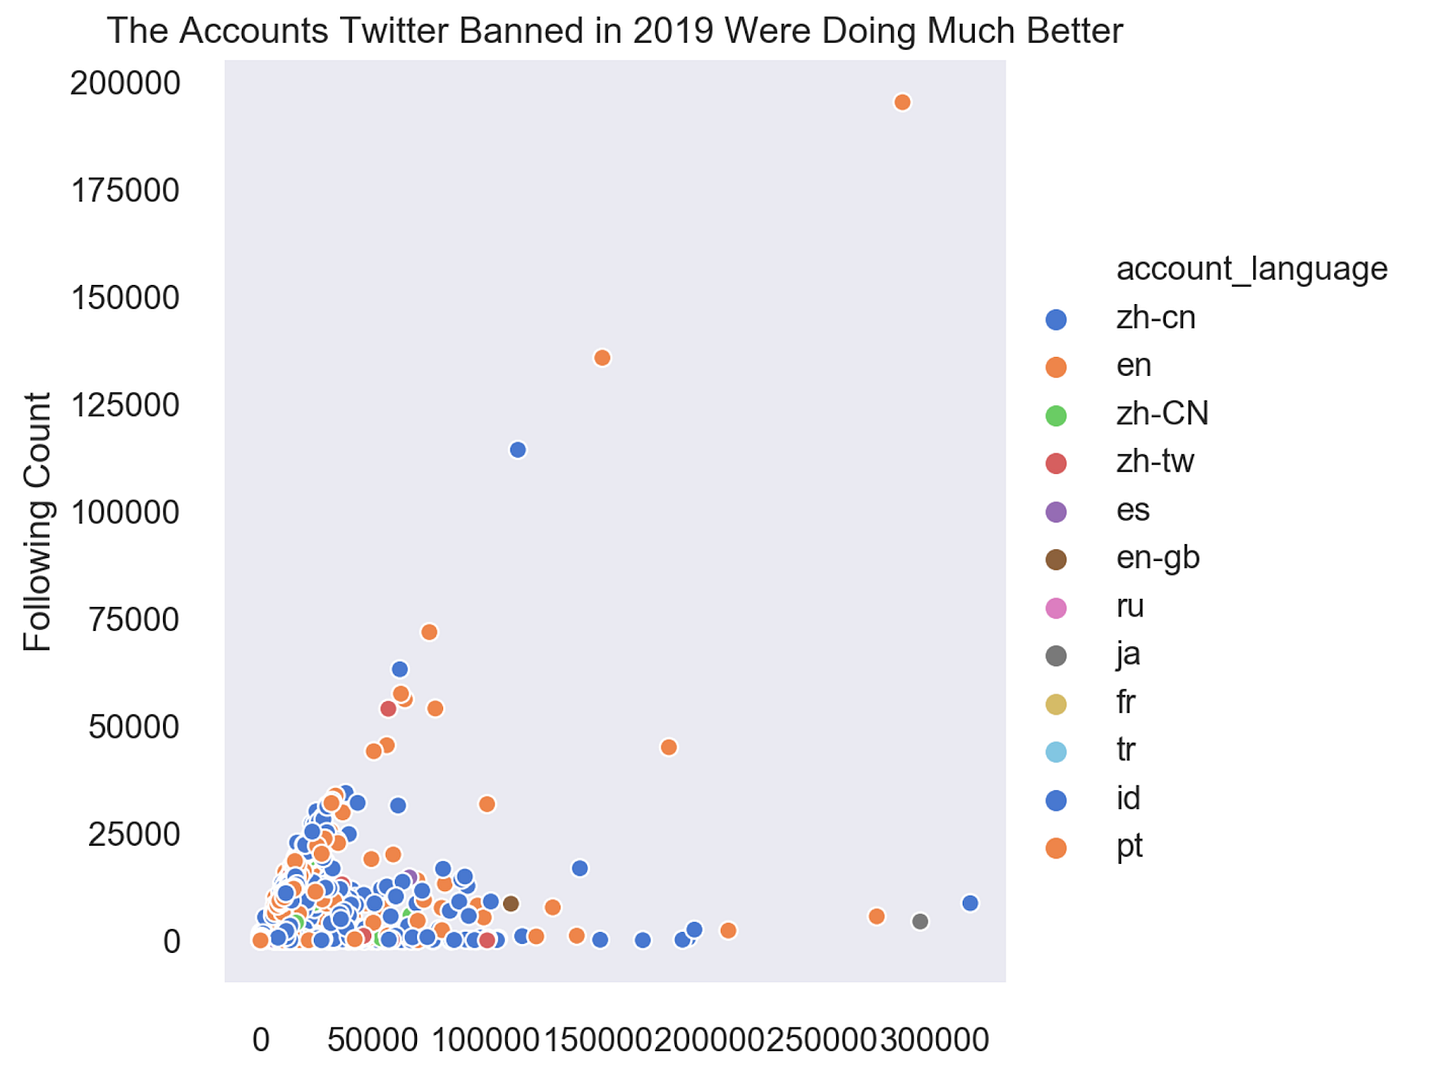 The Accounts Twitter Banned in 2019 Were Doing Much Better  3  o  200000  175000  150000  125000  100000  75000  50000  25000  account _ language  zh-cn  en  zh-CN  zh-tw  es  en-gb  ru  fr  id  pt  o  50000 100000150000200000250000300000